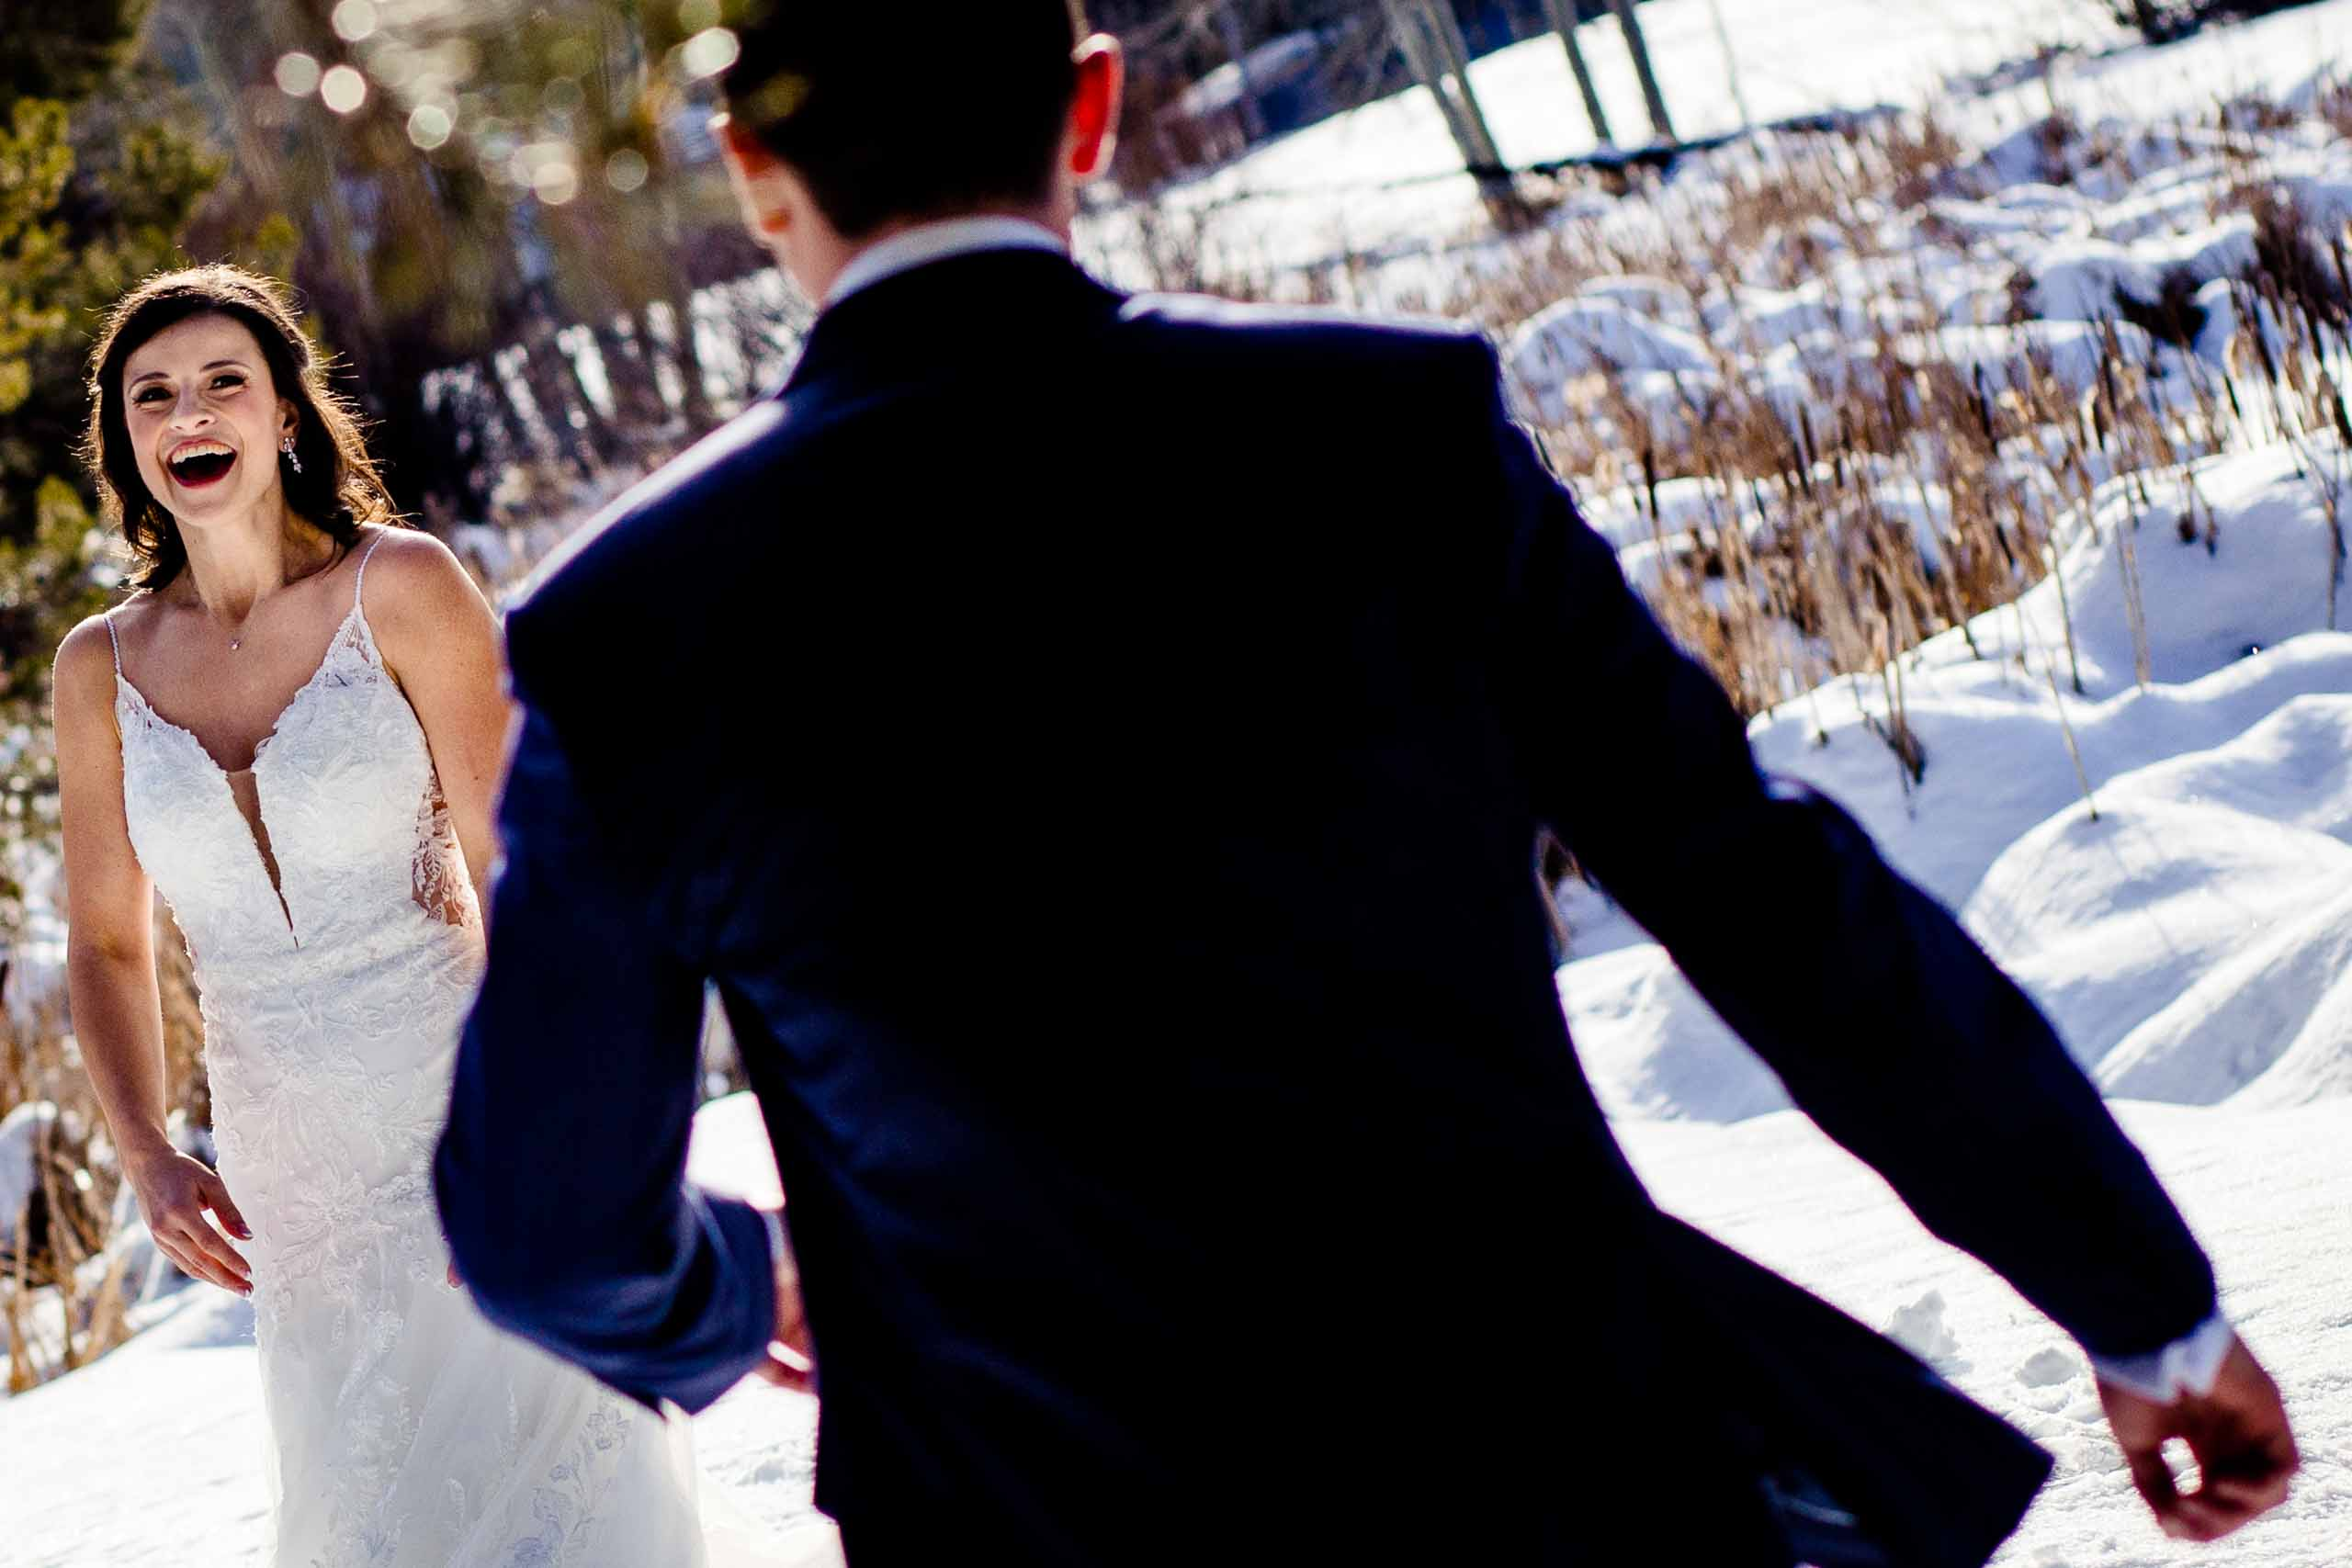 Fantastic fun photo of bride and groom seeing each other for the first time for their Sunriver Resort wedding in Oregon